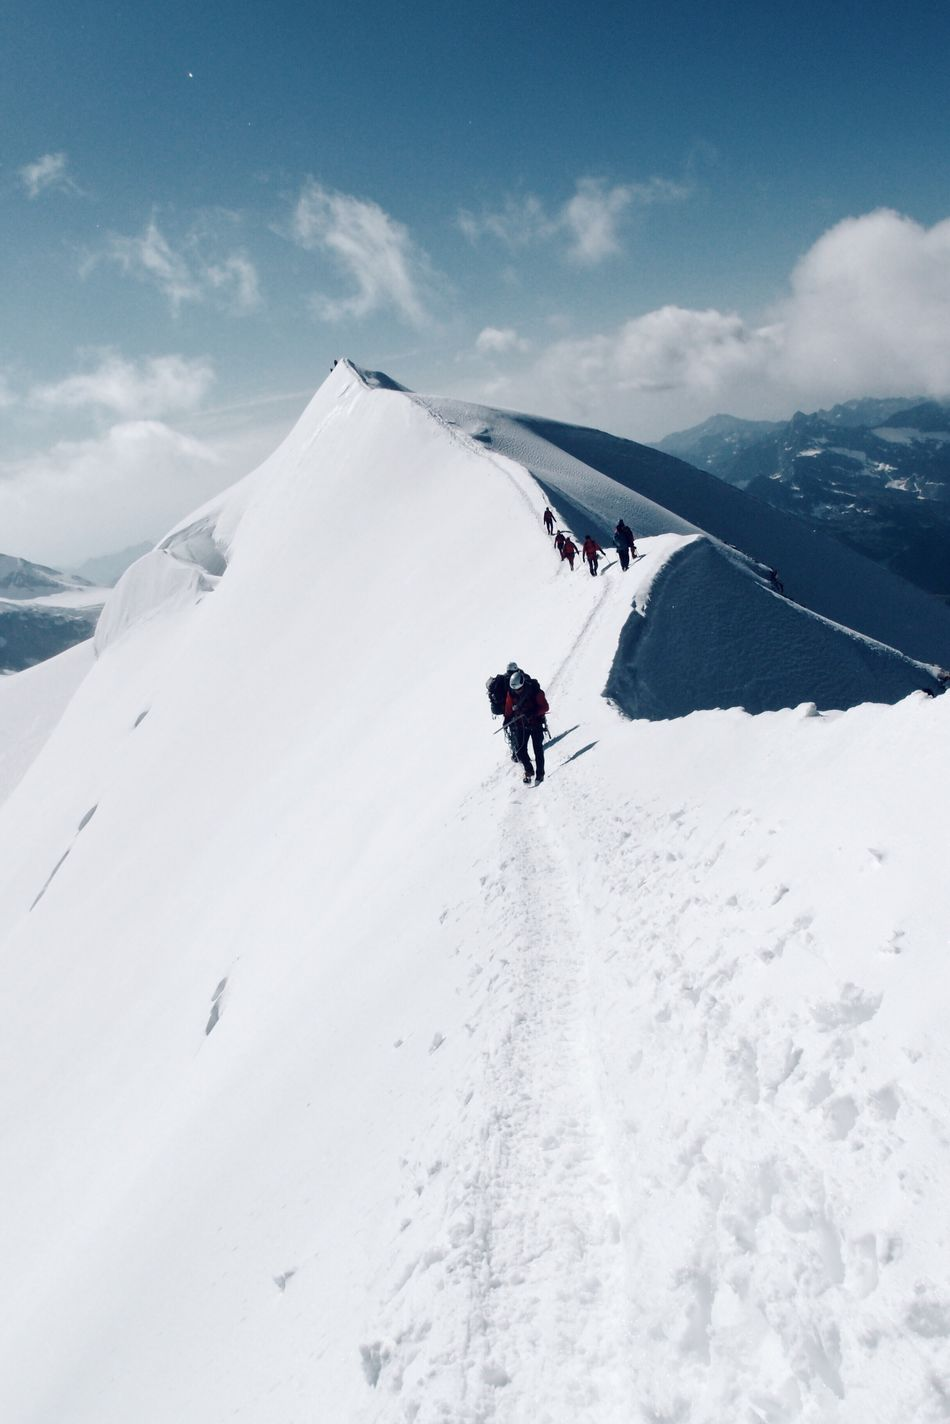 HIGH ABOVE, by Claudia Ioan Adventure Real People Snow Mountain Winter Leisure Activity Climbing Sport Outdoors Day Sky Landscape Nature VSCO Monte Rosa Italy